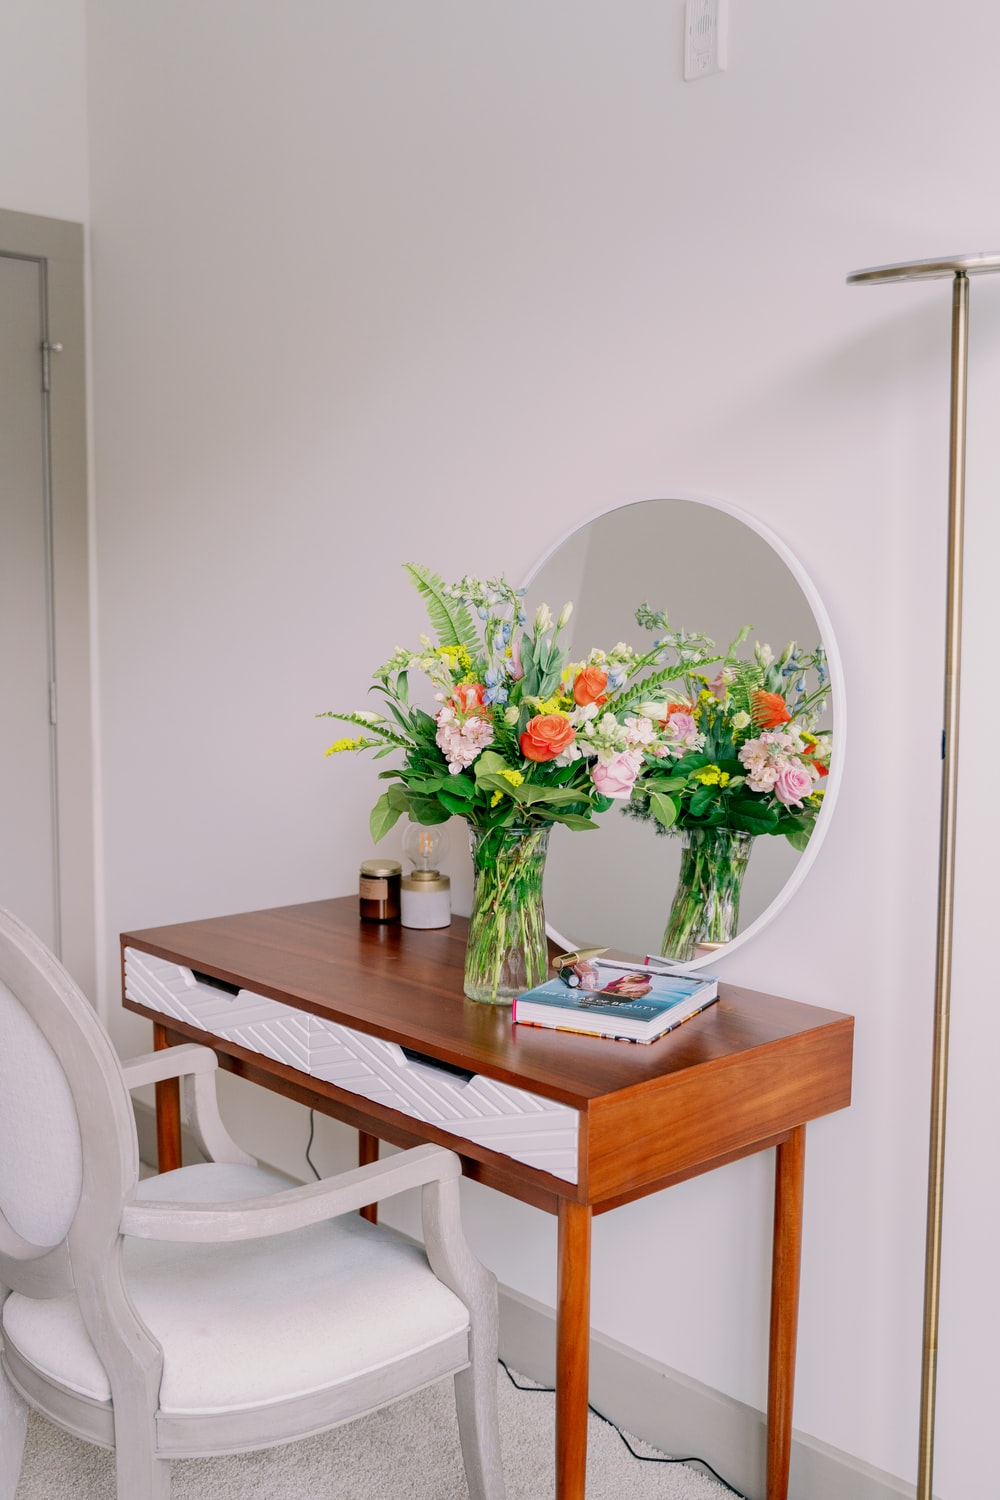 white and red flowers in clear glass vase on brown wooden table